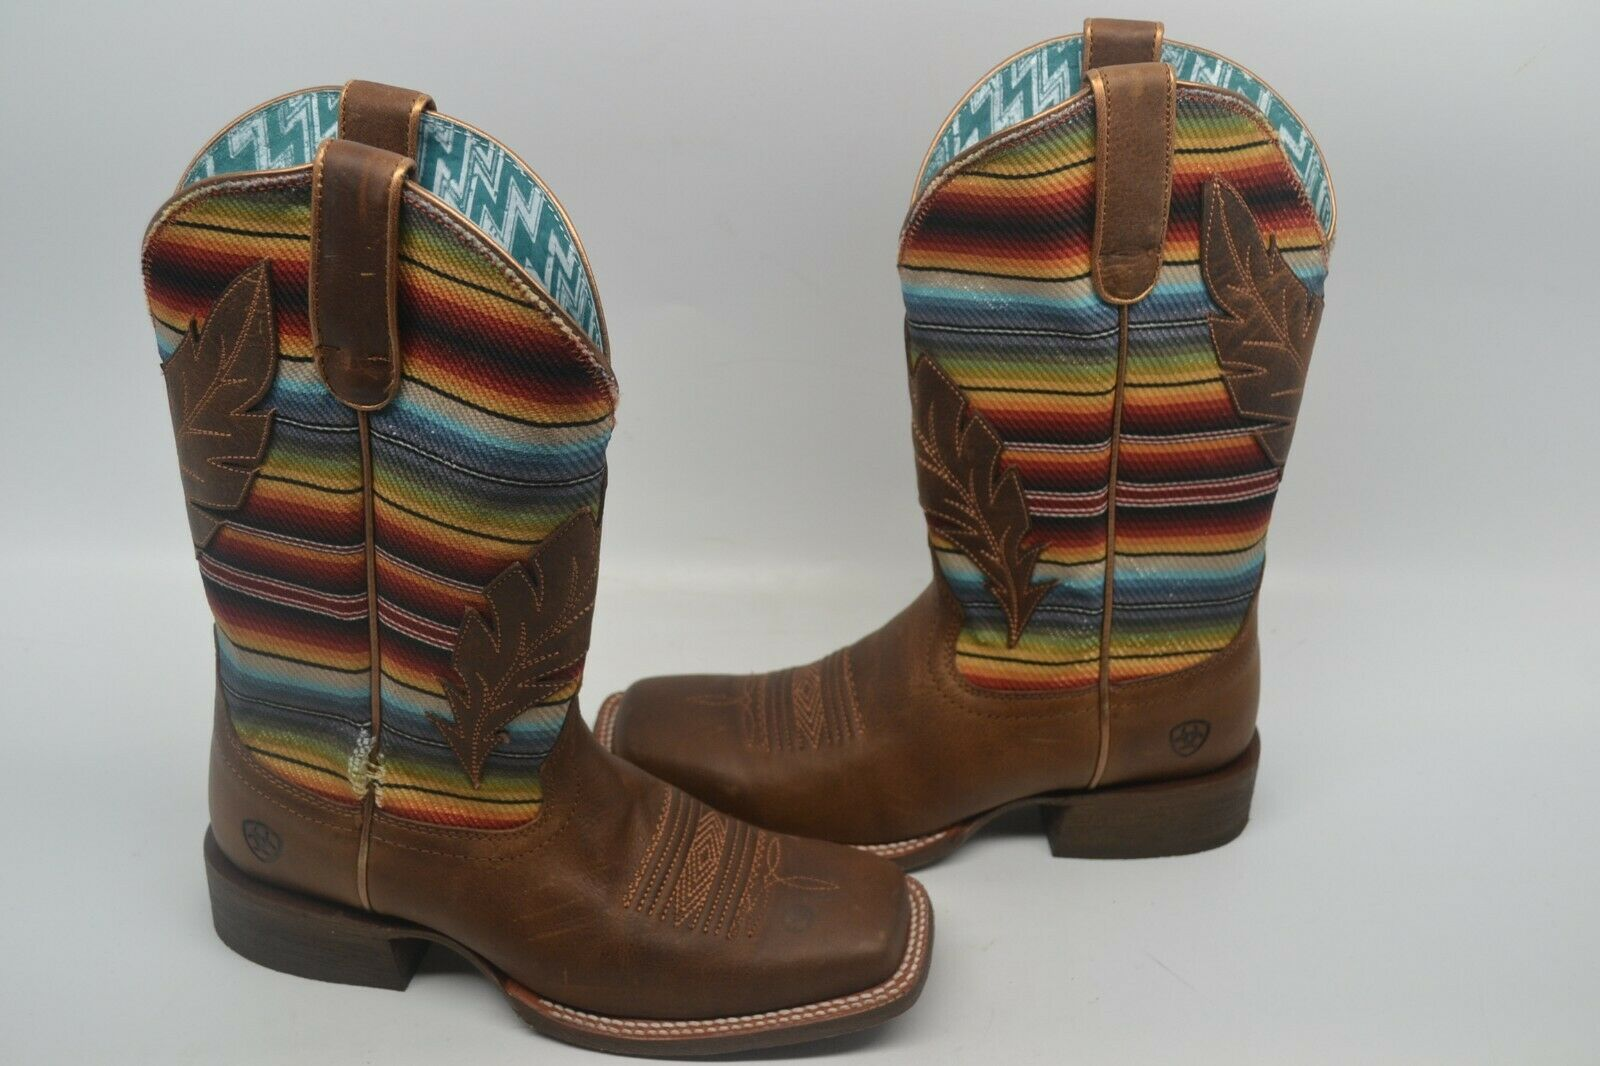 Ariat Women's 7.5 B Circuit Autumn Tan Serape Feather Square Toe Boots 10025050